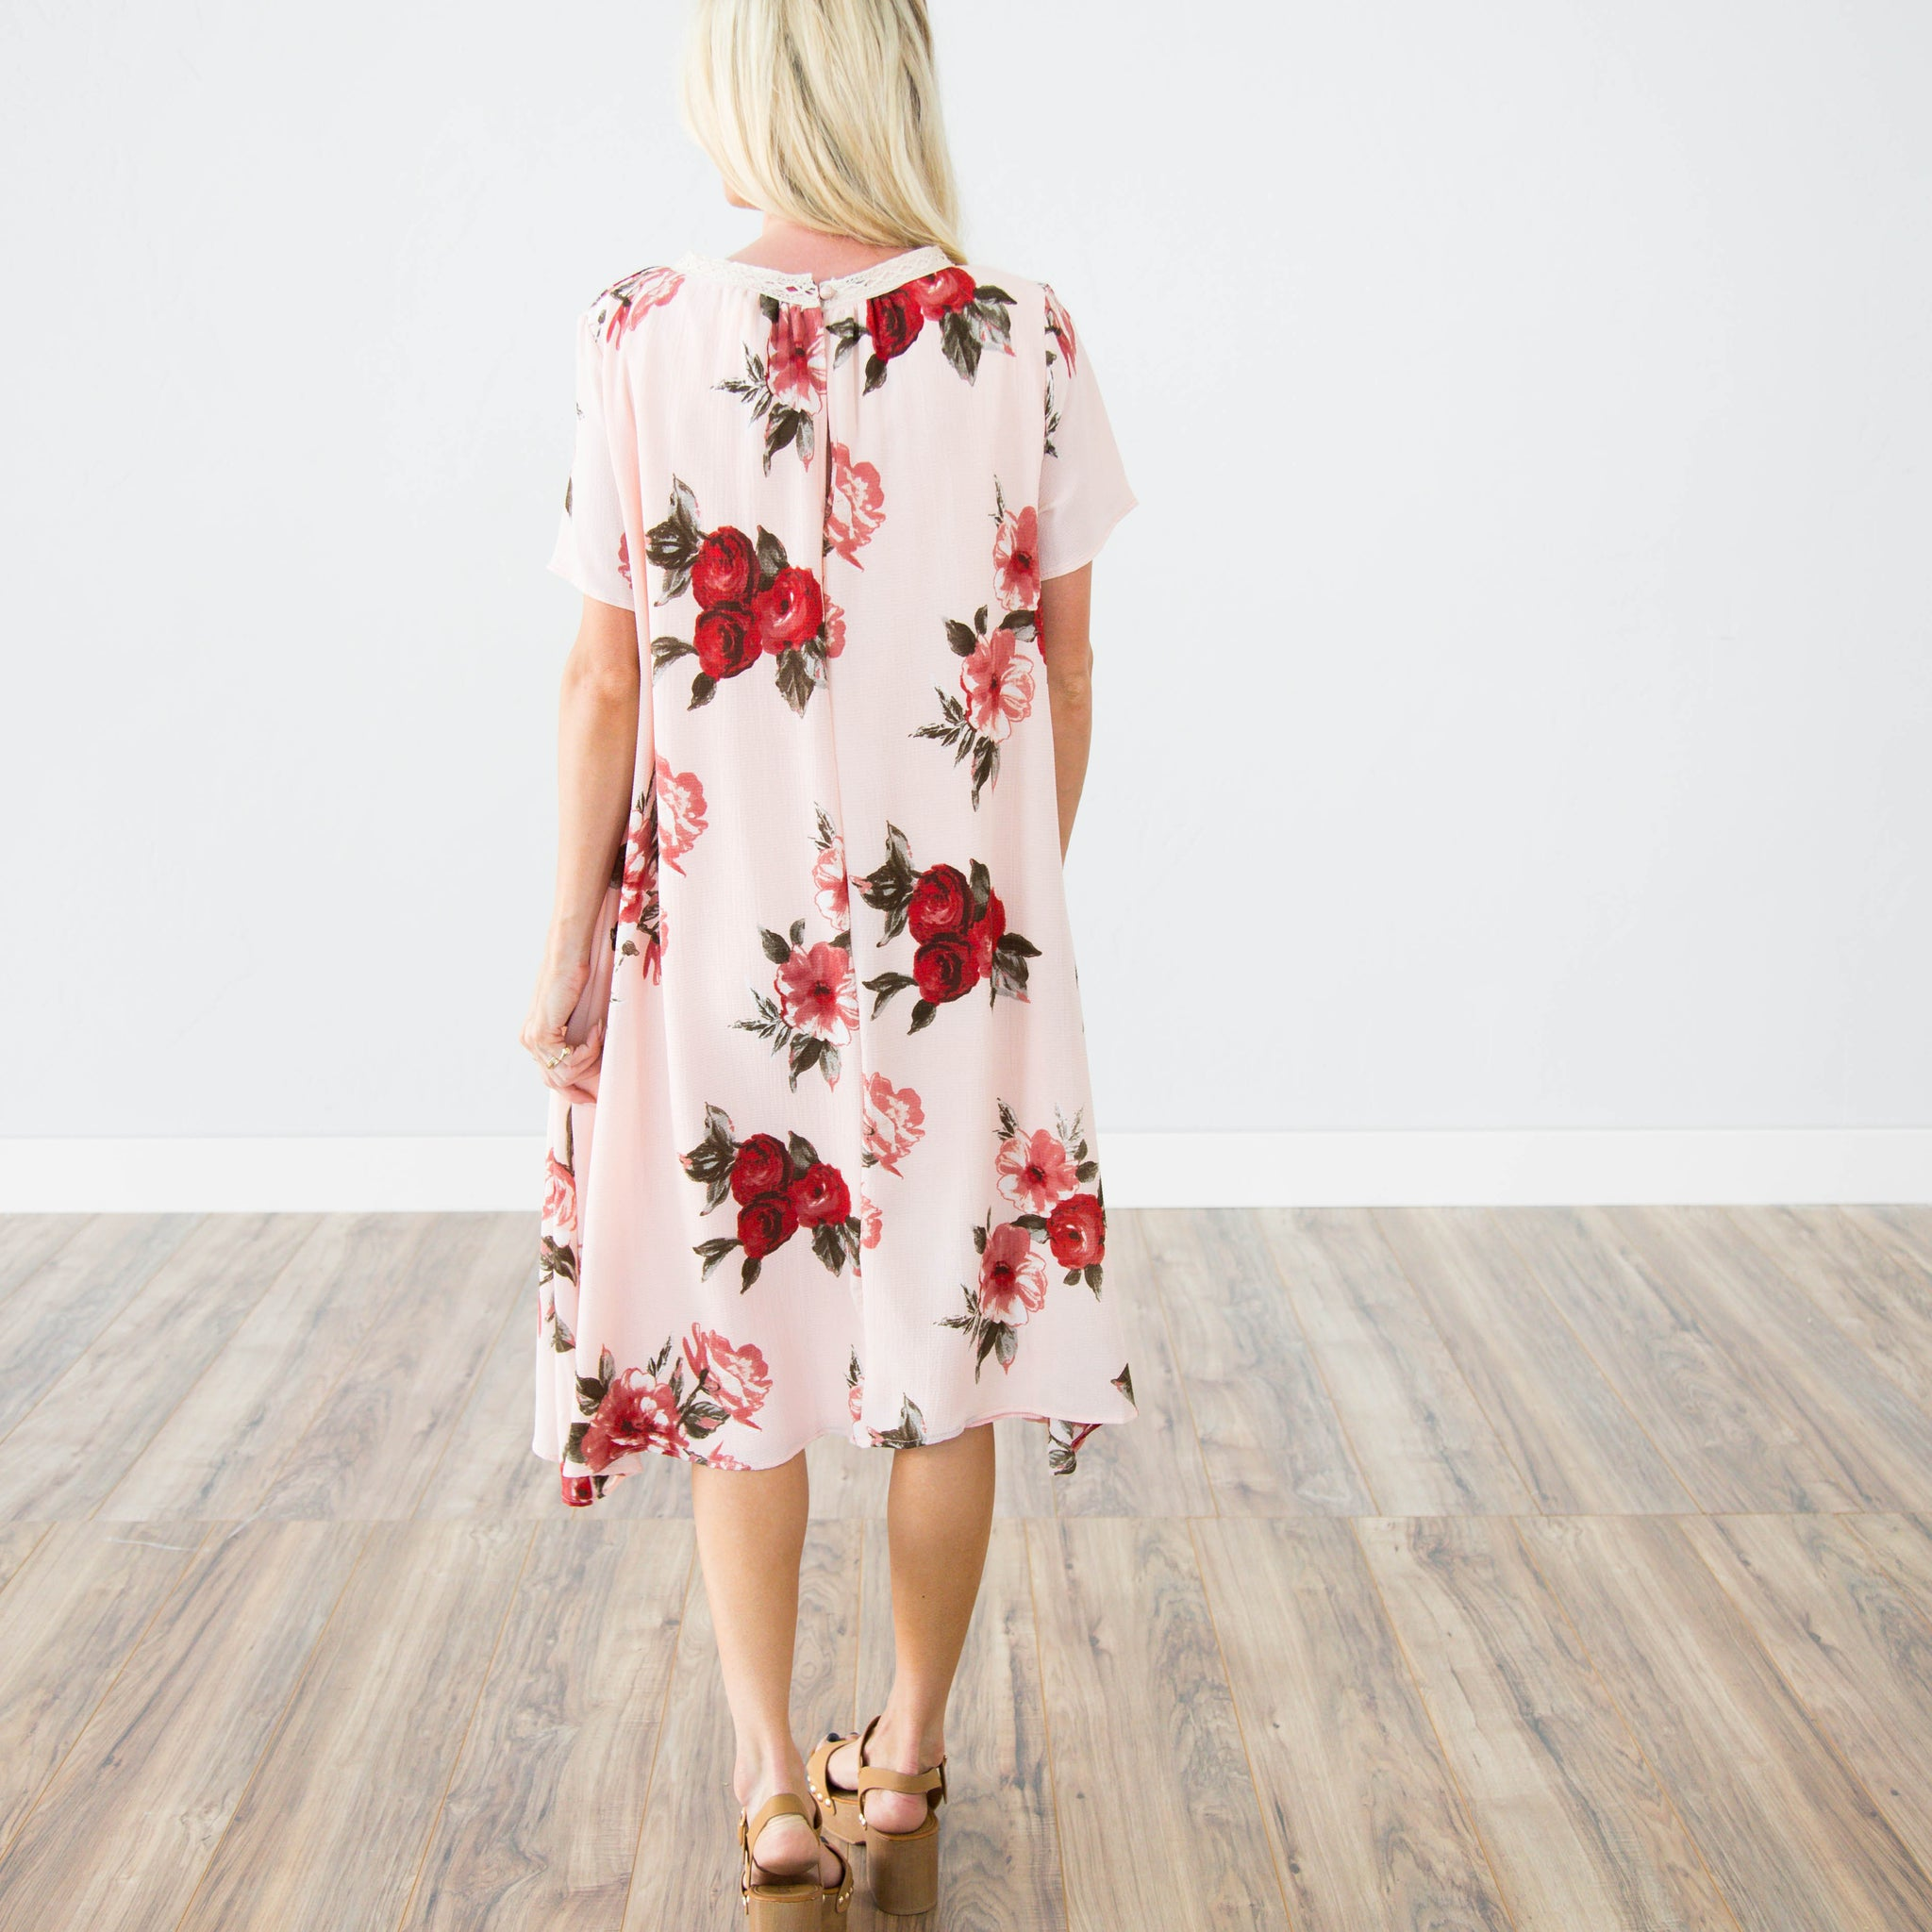 Sammie Blush Dress